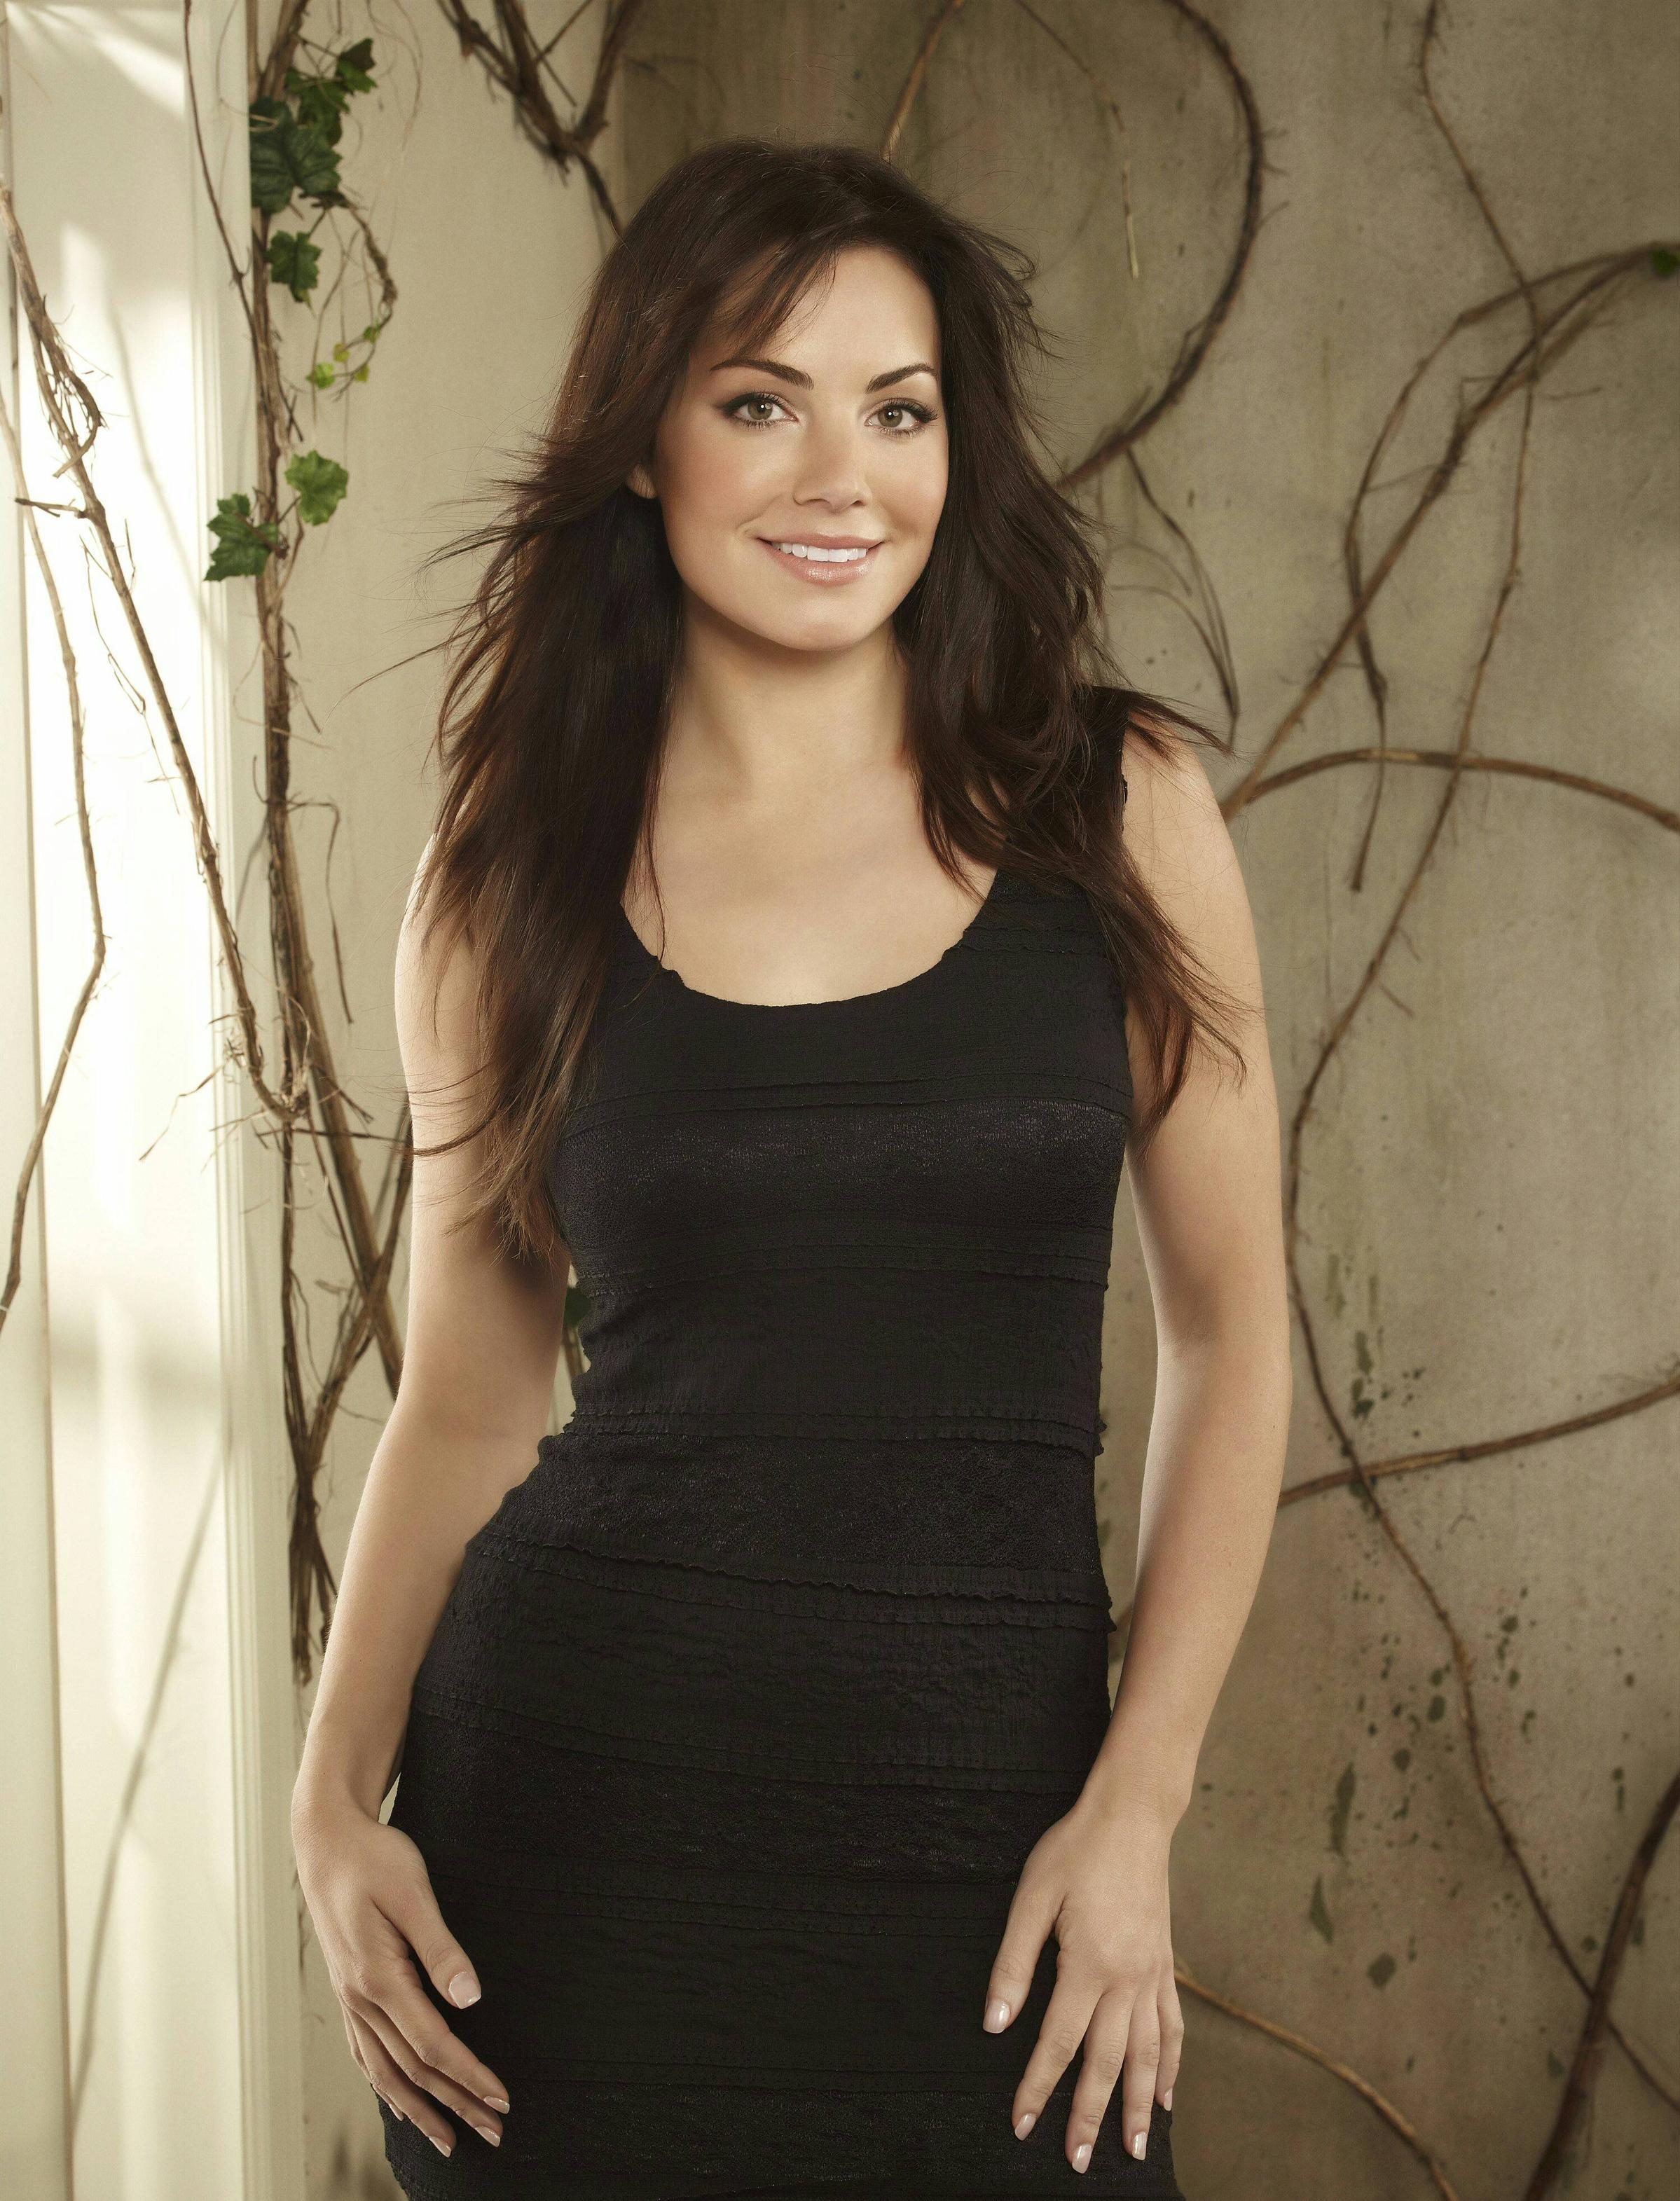 Erica Durance images 23